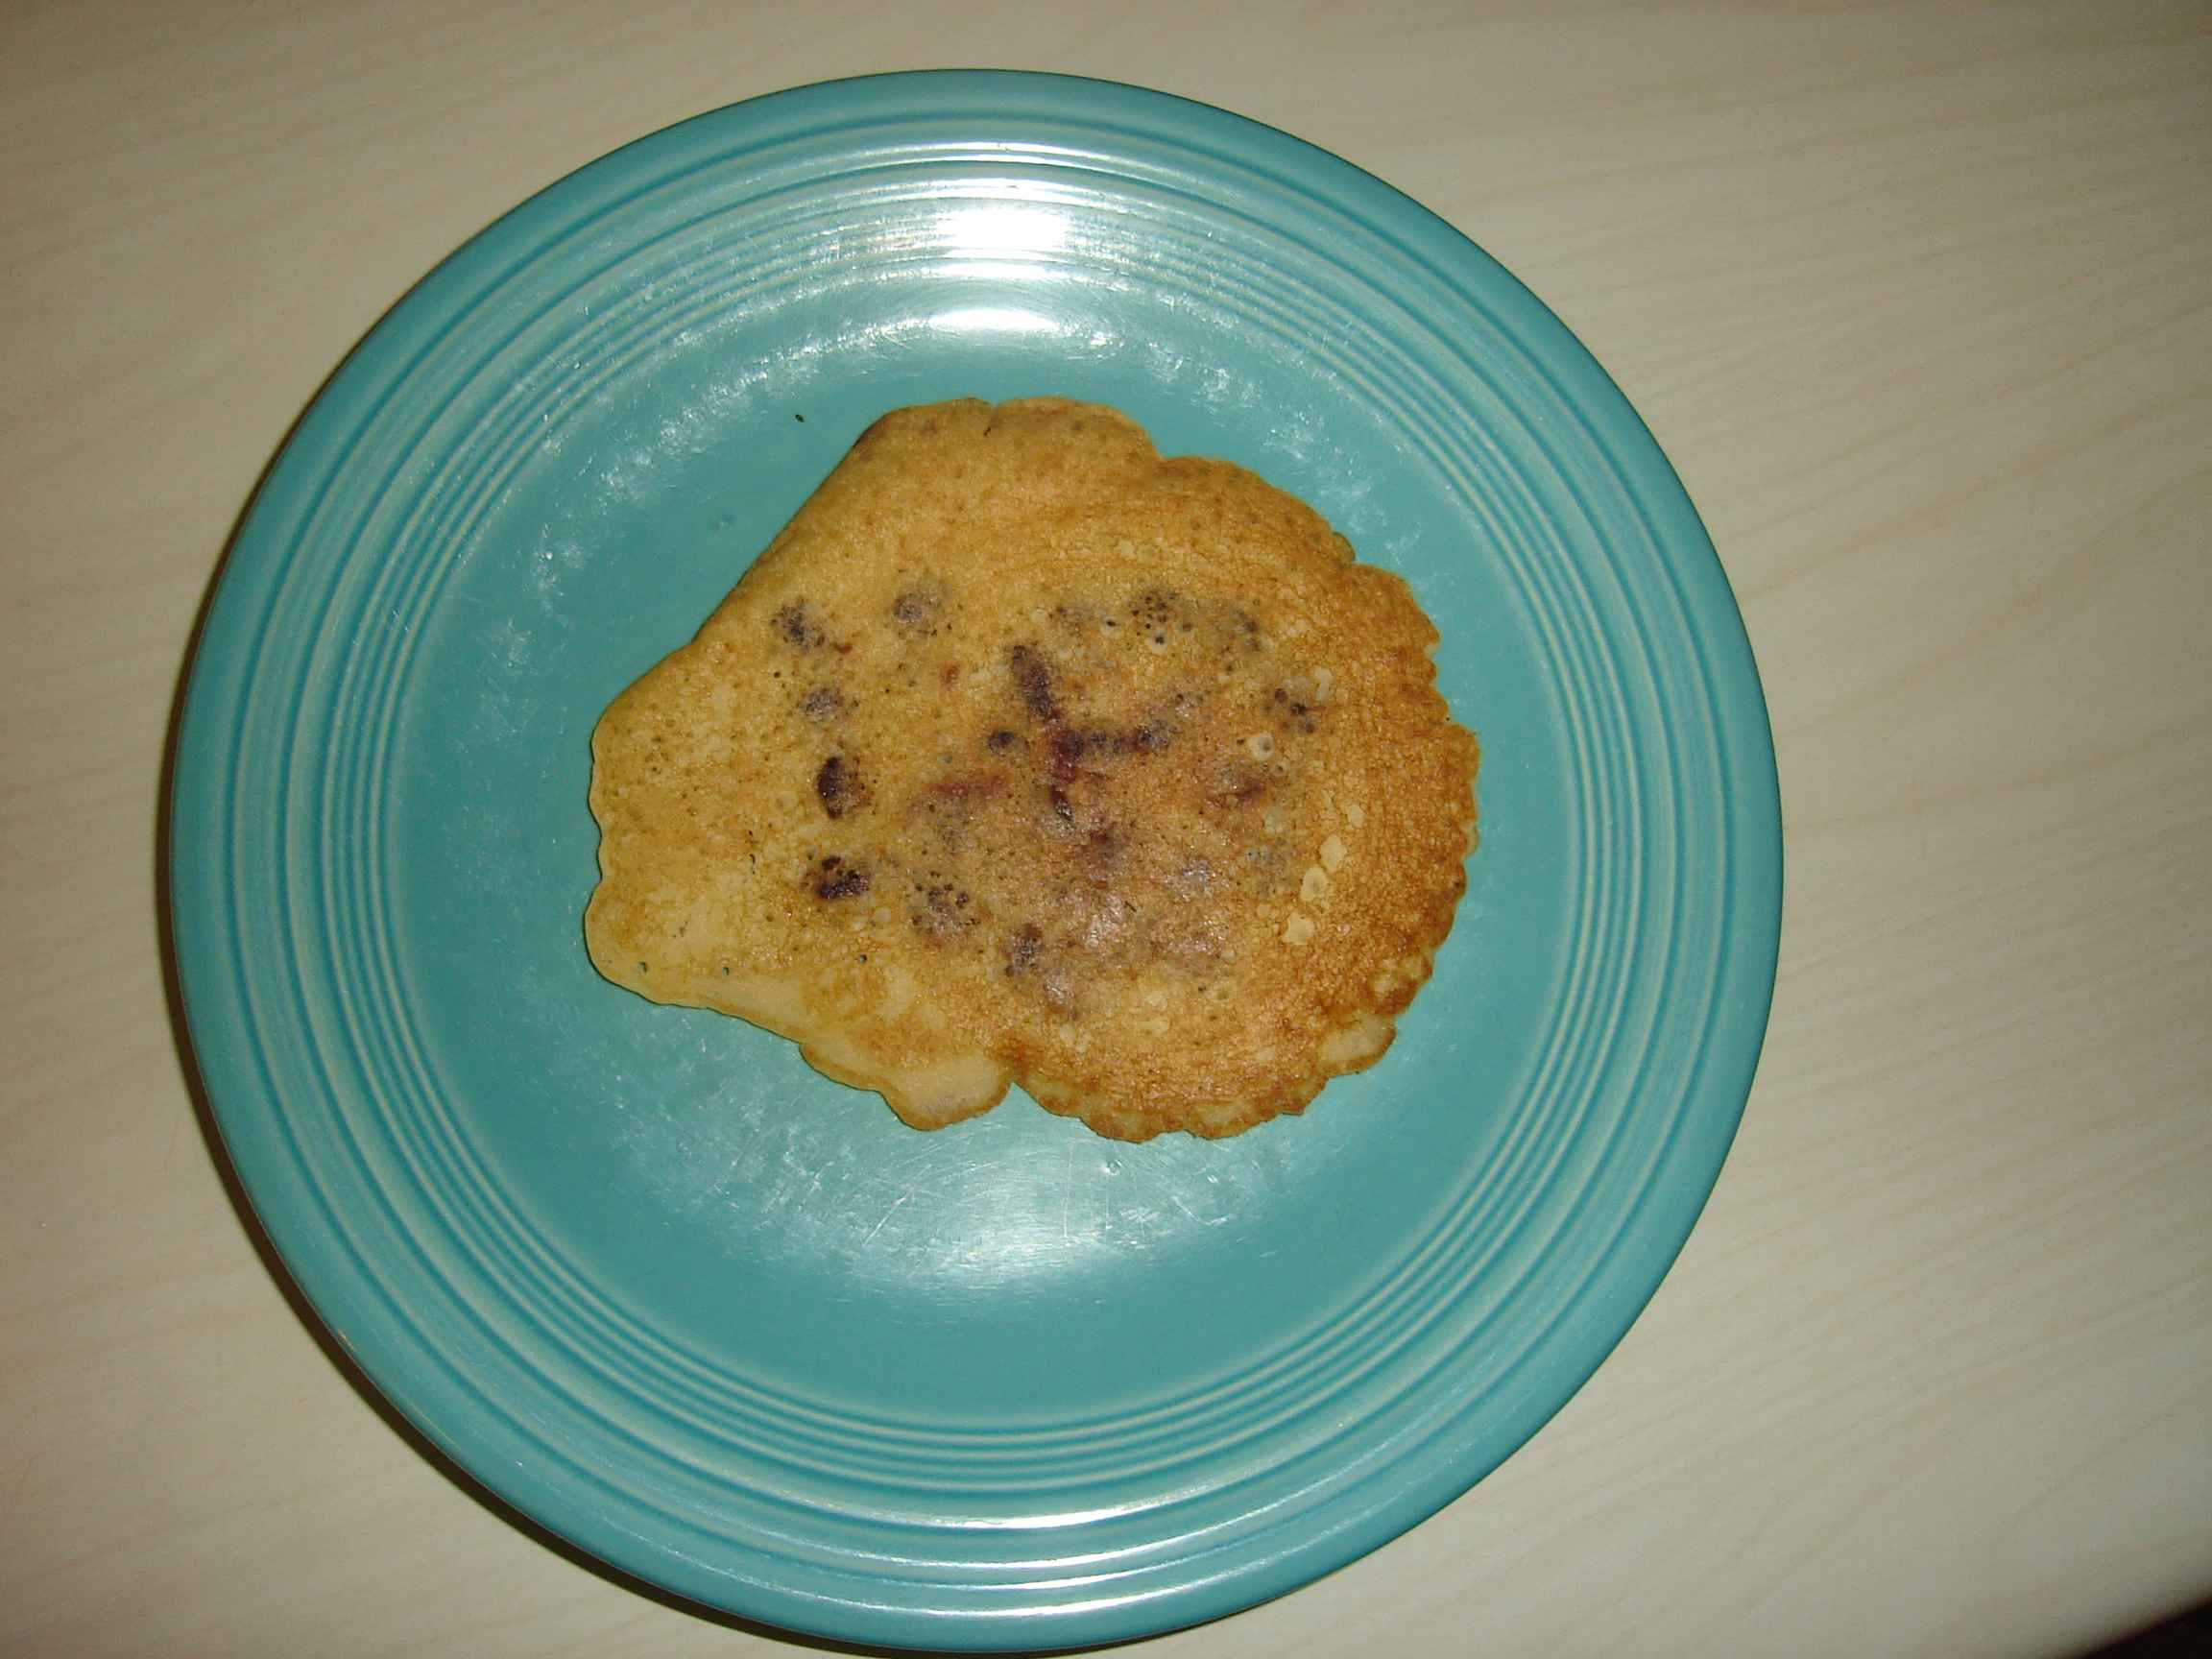 The Millennium Falcon pancake